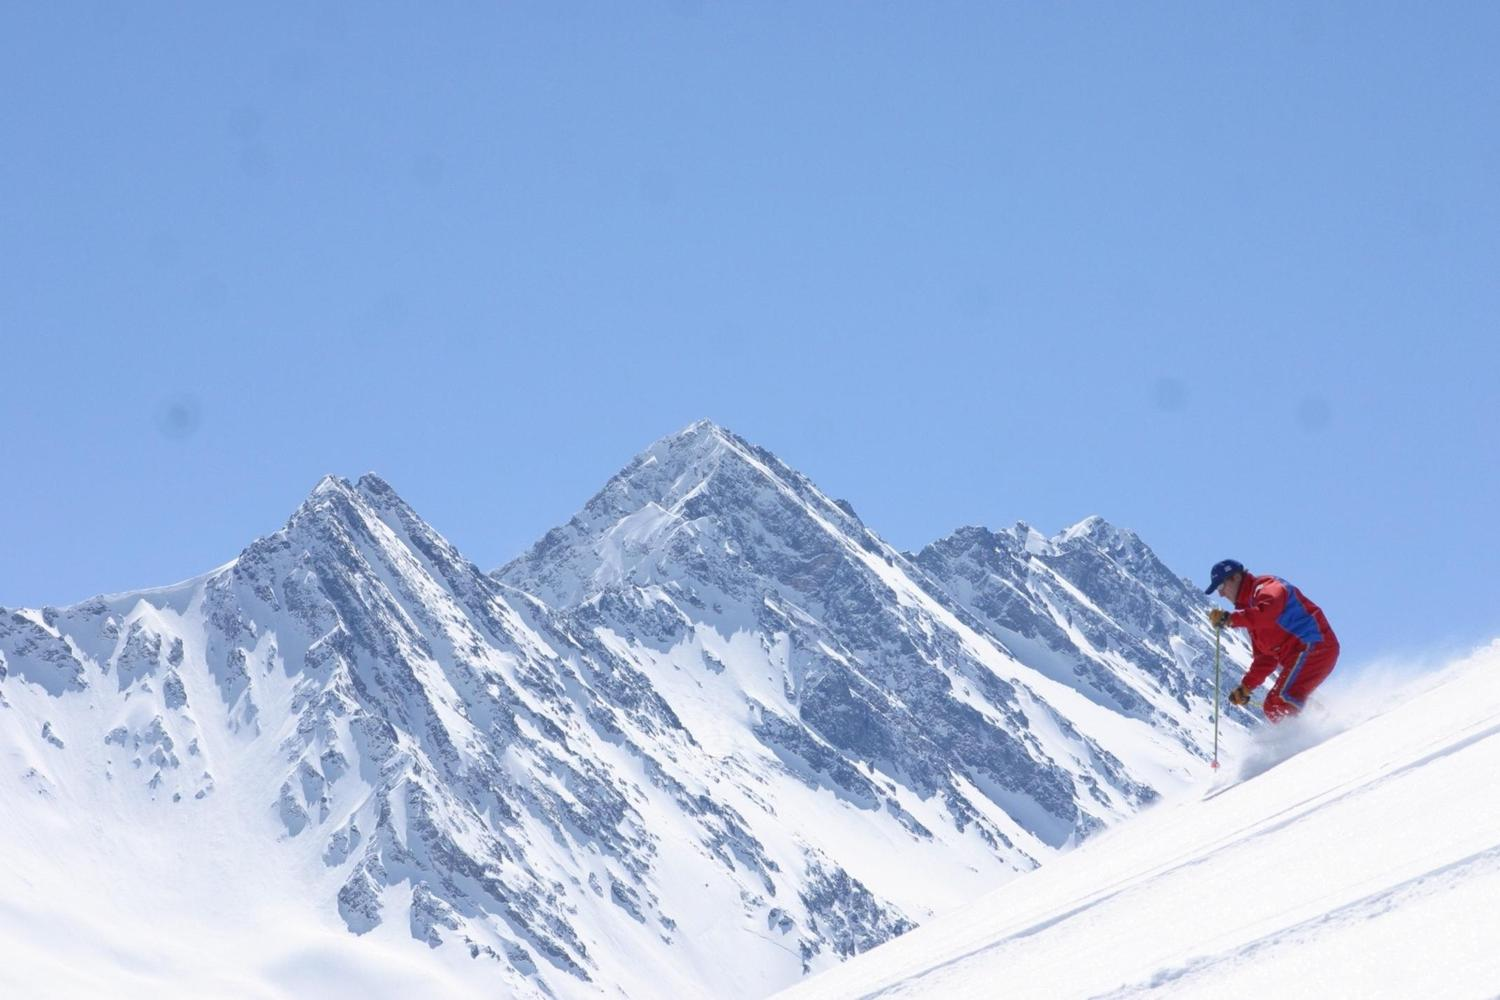 Empty slopes to be explored at Portillo, Chile